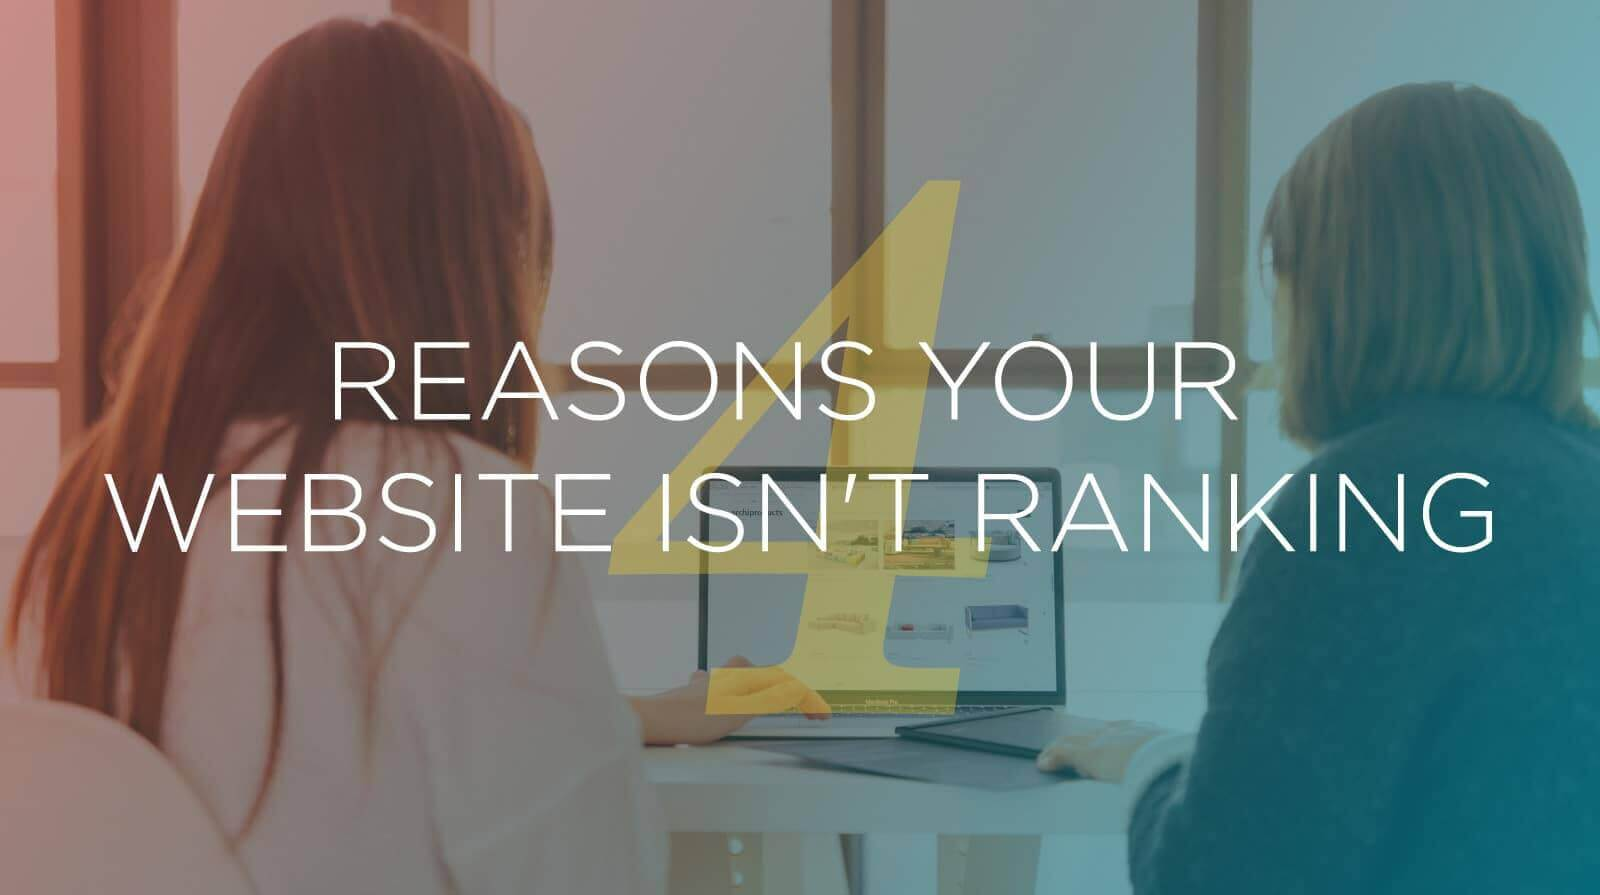 4 reasons your website isn't ranking